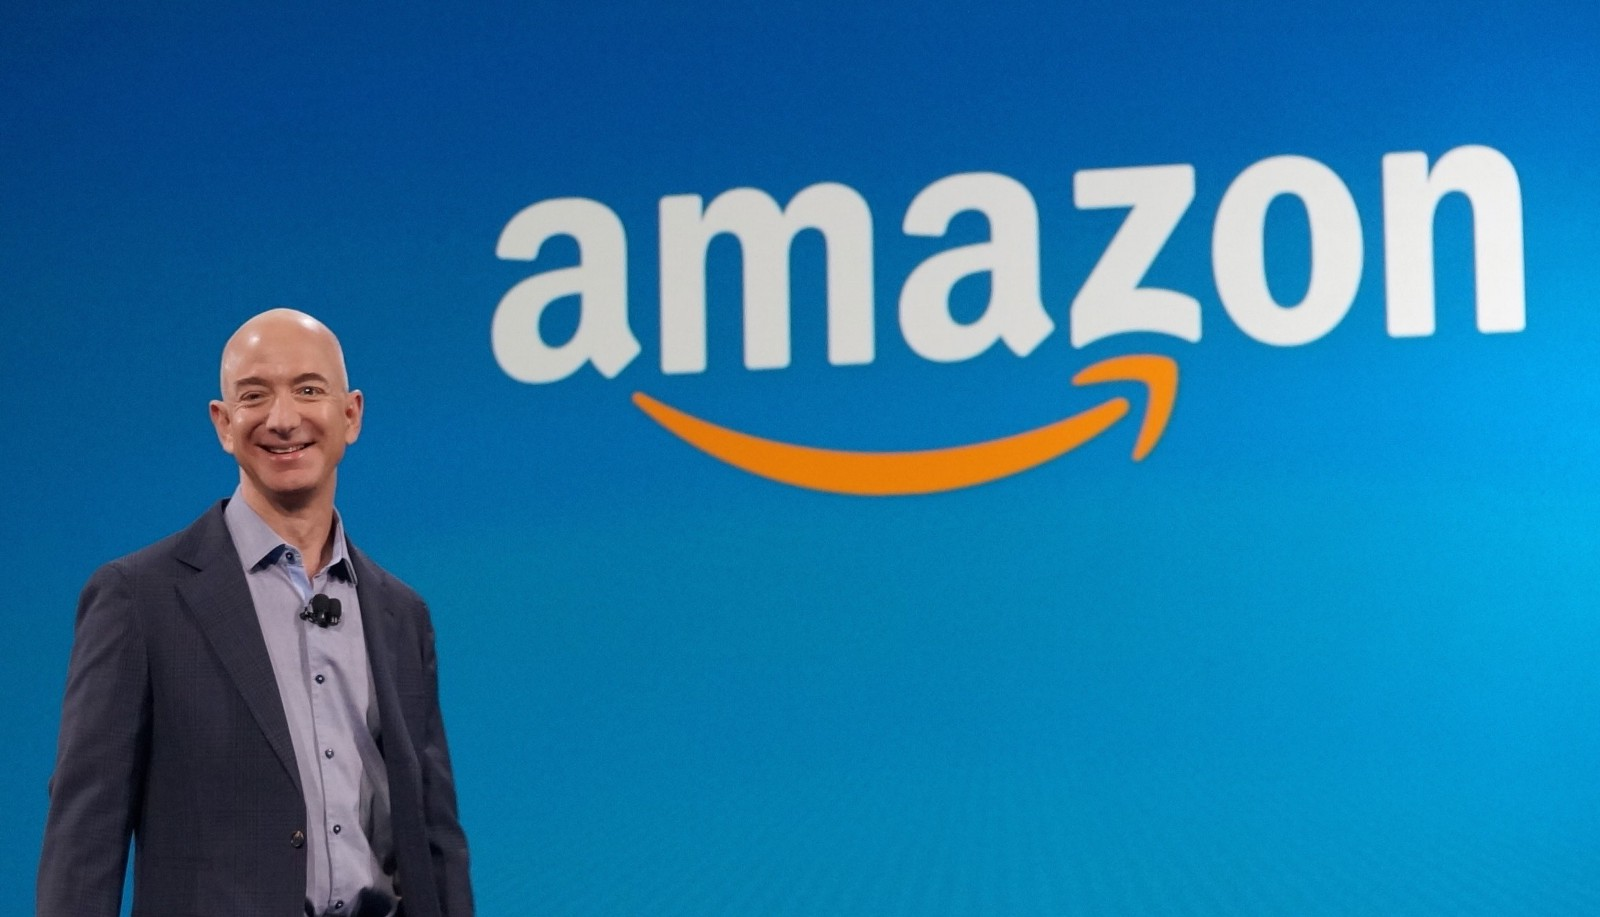 Amazon will go bankrupt, and that's what company founder Jeff Bezos guarantees us.